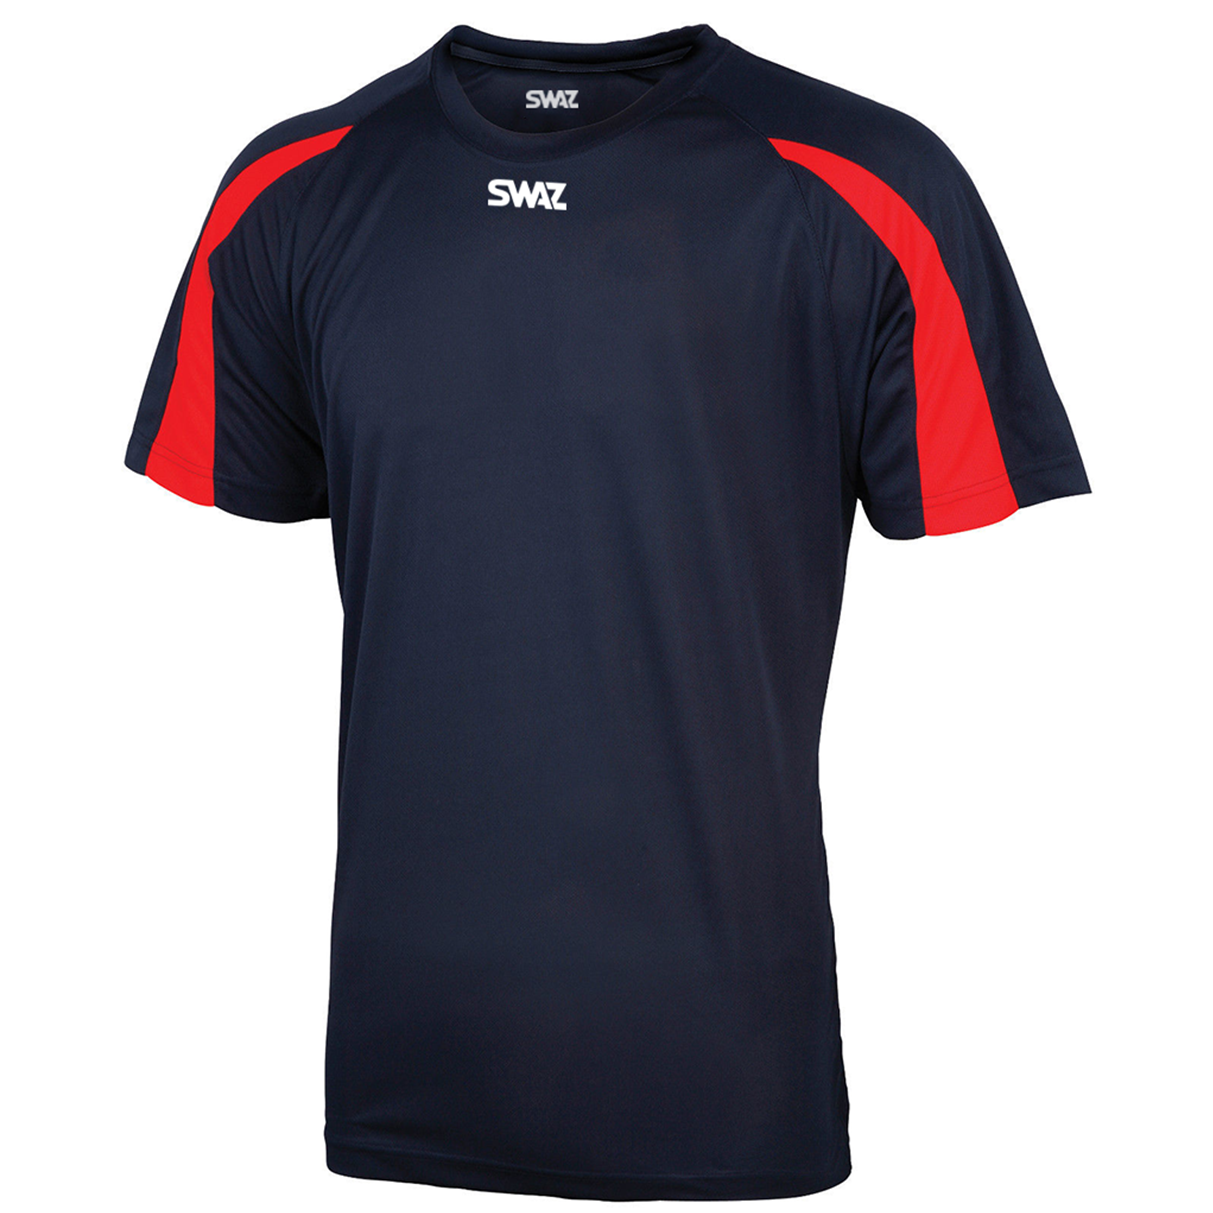 SWAZ Youth Premier Training T-Shirt - Navy Red Available in 5 Sizes 91c566b7f